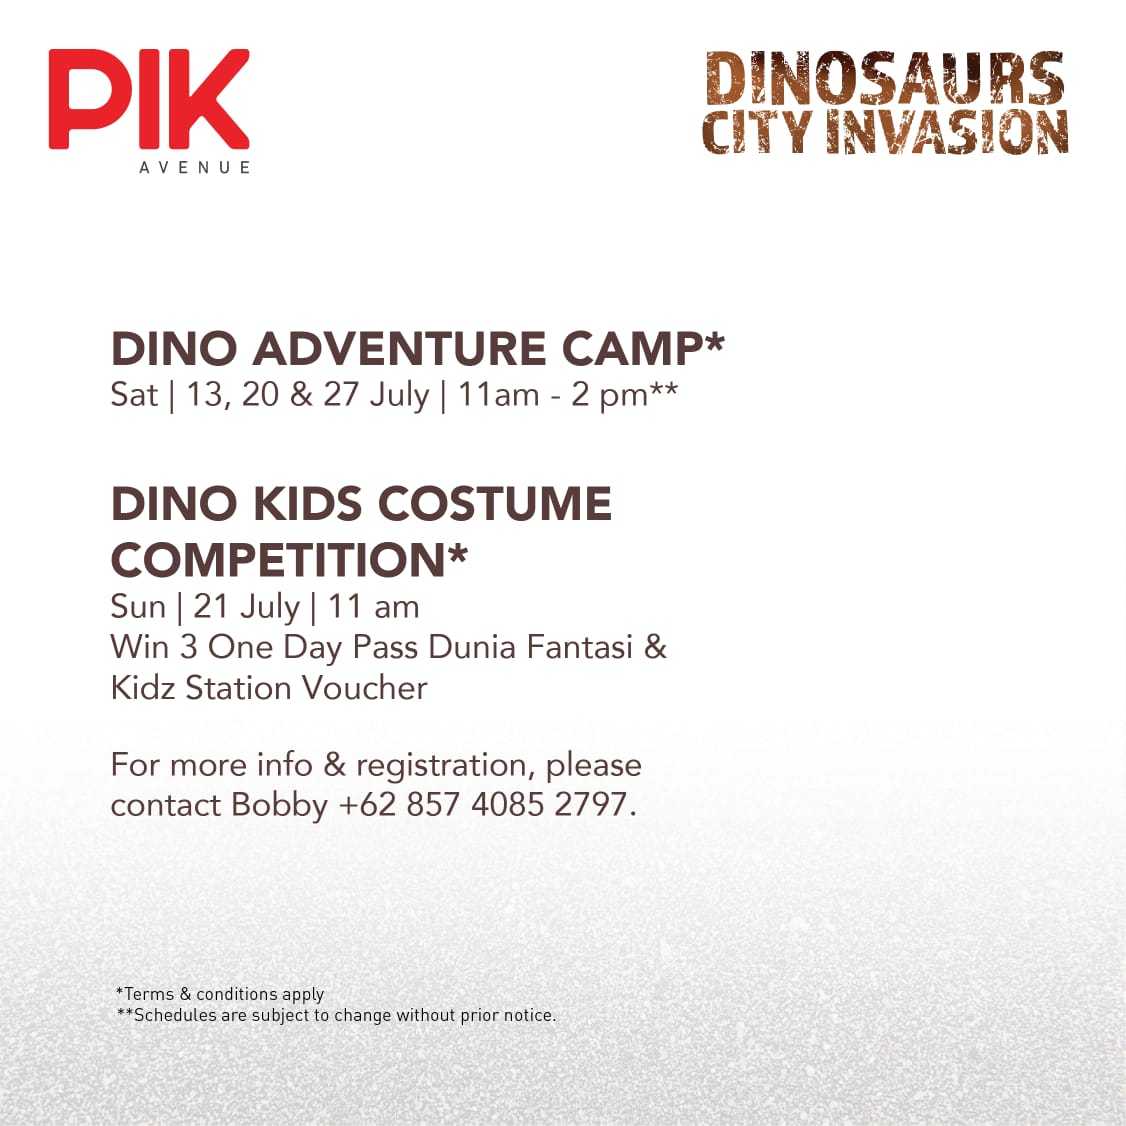 DINO KIDS COSTUME COMPETITION - Mark your calendar, Sunday, 21 July 2019. Joint the competition, and win Dunia Fantasi Tickets and Kidz Station Vouchers. More info, Bobby: +6285740852797